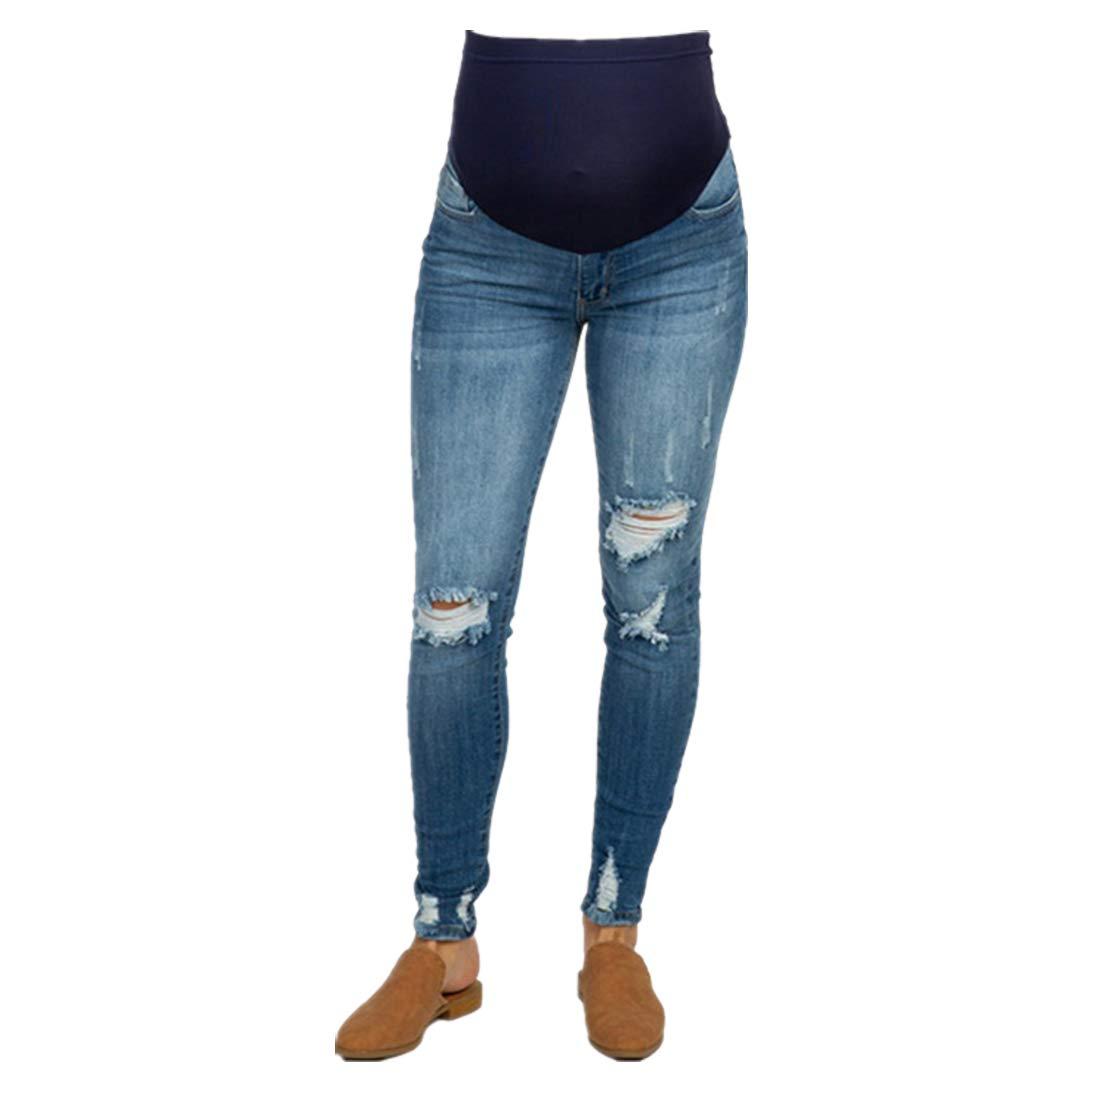 YoungMom Maternity Skinny Jeans Maternity Pants Womens Comfy Stretchy Ripped Distressed Denim Jeans